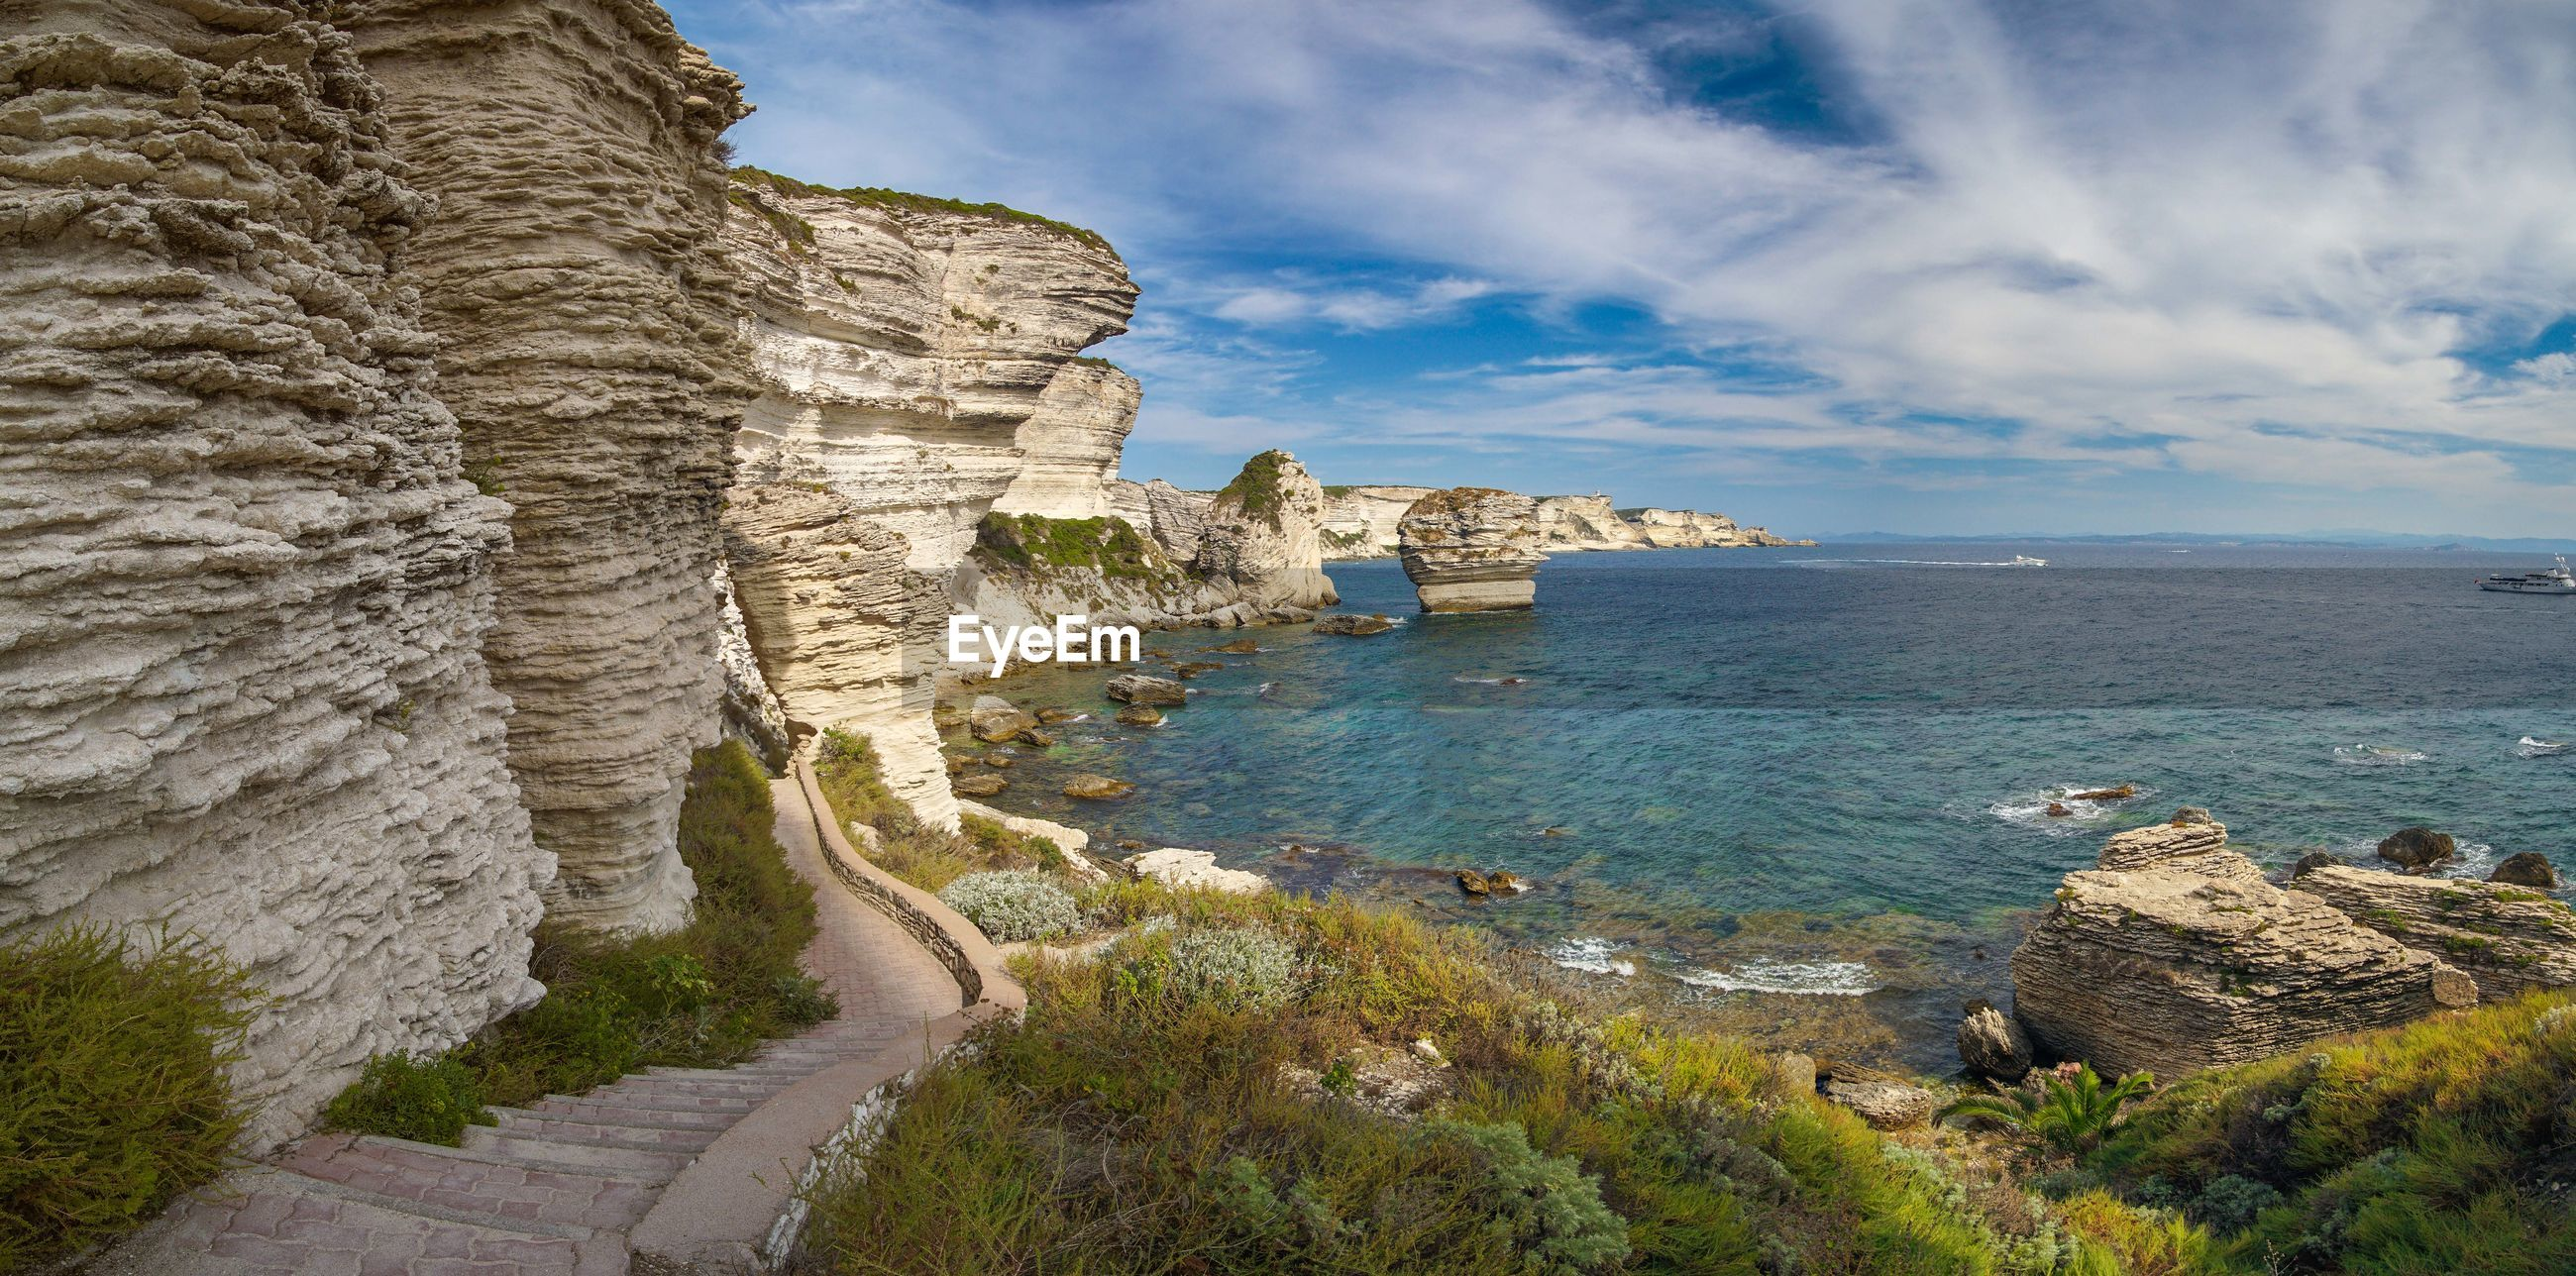 Scenic view of rock formation by sea against sky